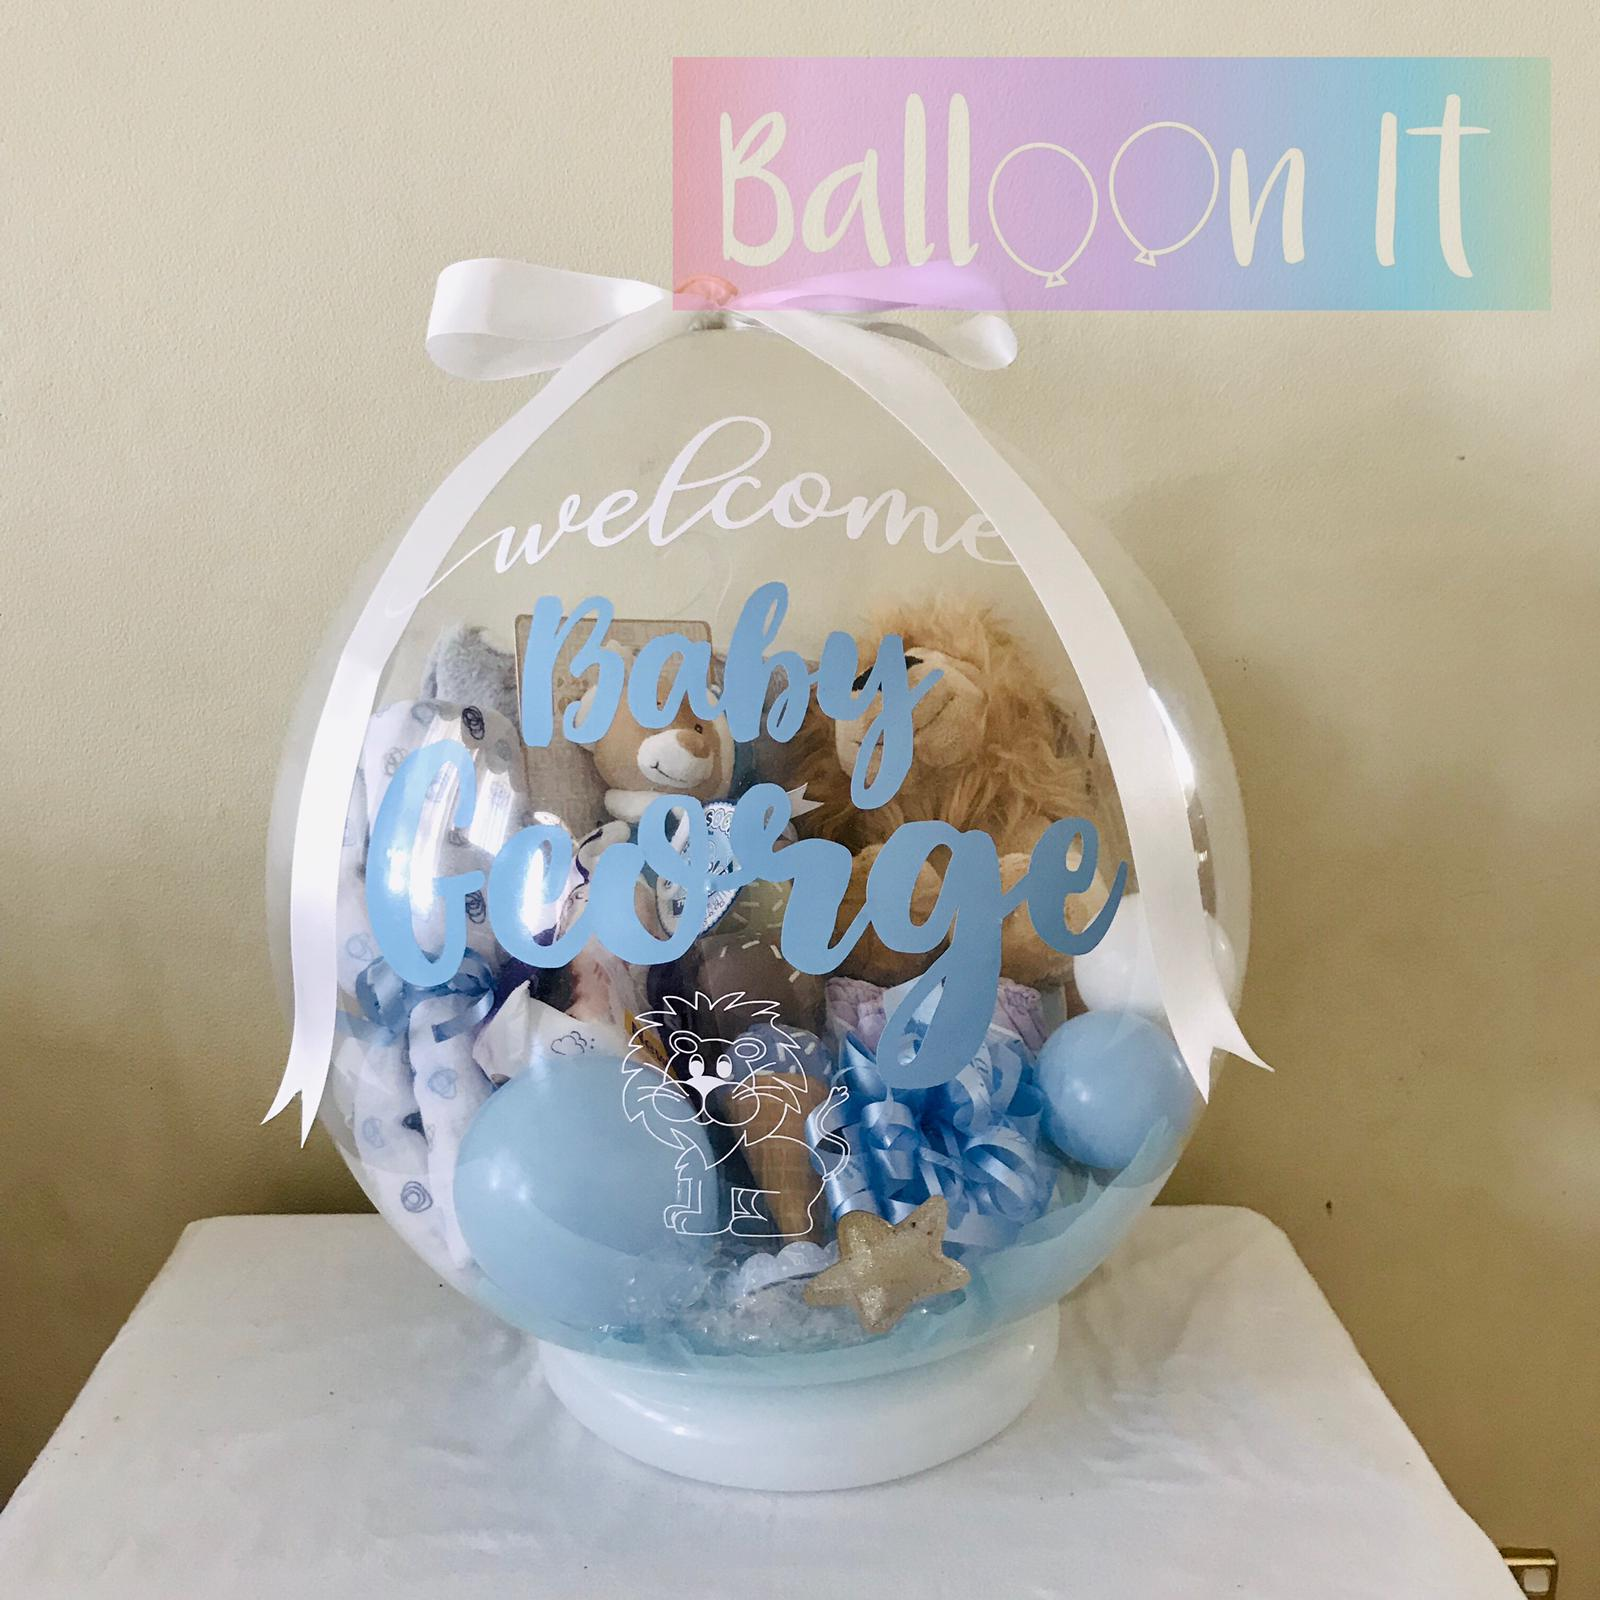 Balloon It Balloon Gifts And Decor For All Occassions Balloonit